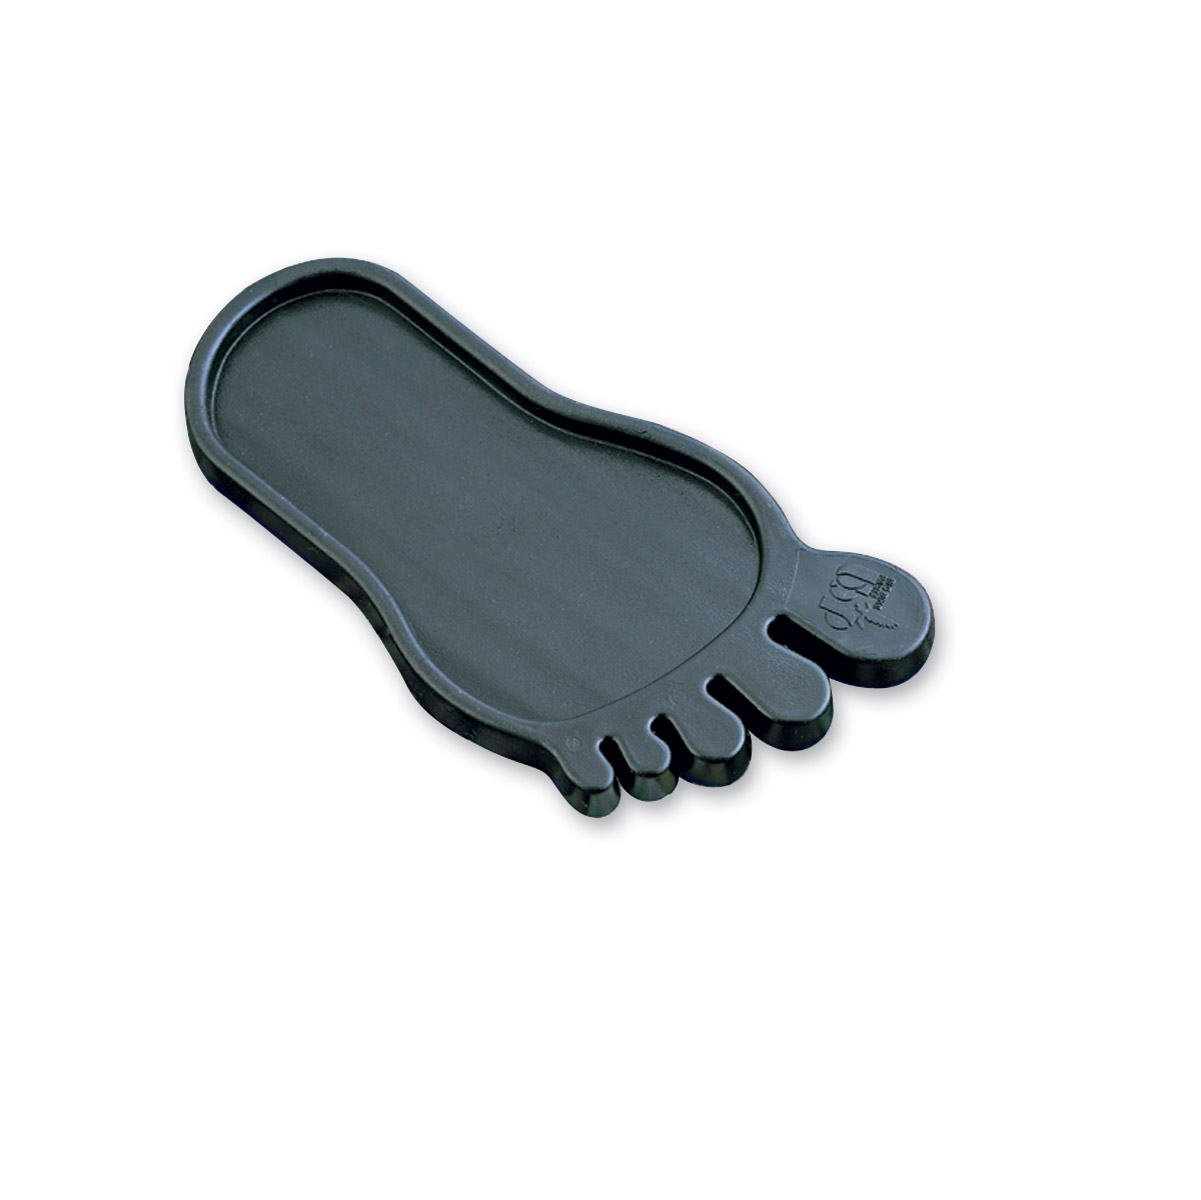 Jp Trampoline Parts: Show Chrome Accessories Rubber Foot Kickstand Pad